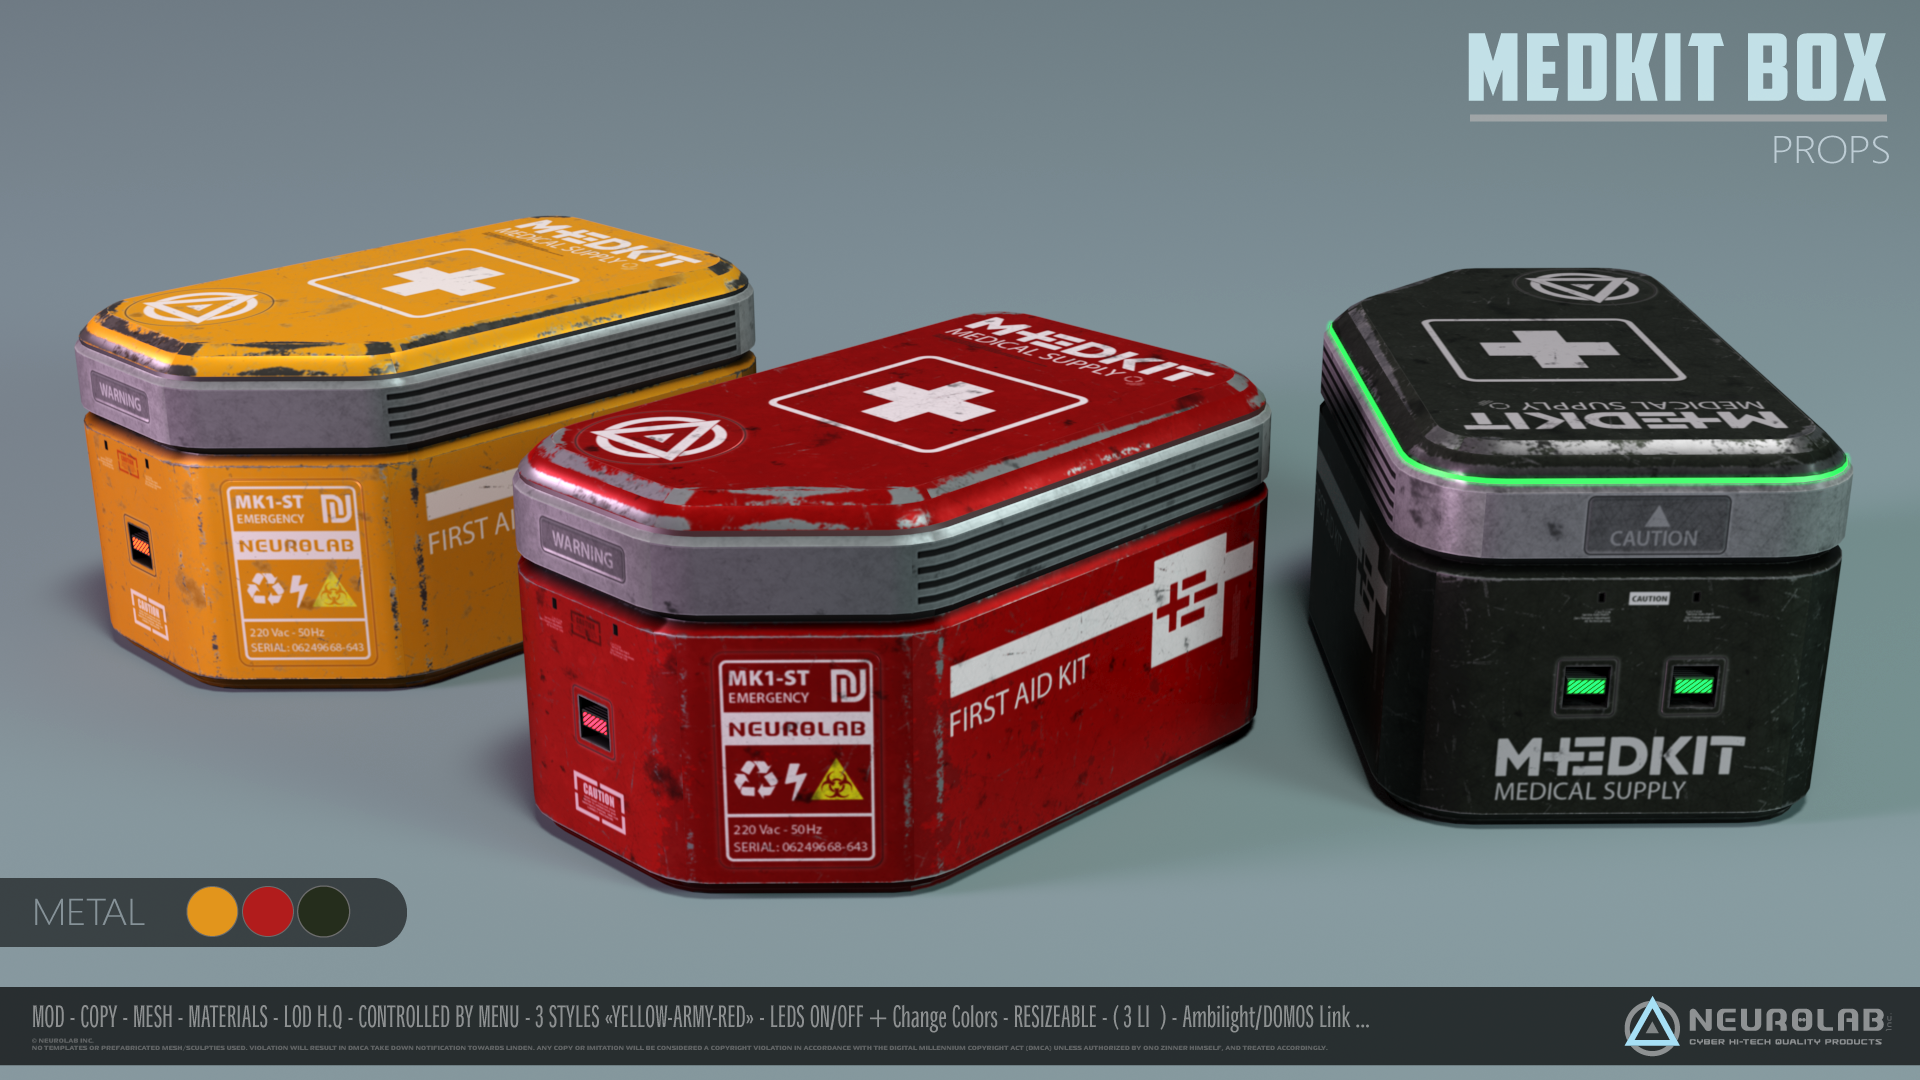 MEDKIT BOX V.2.0 *Update*